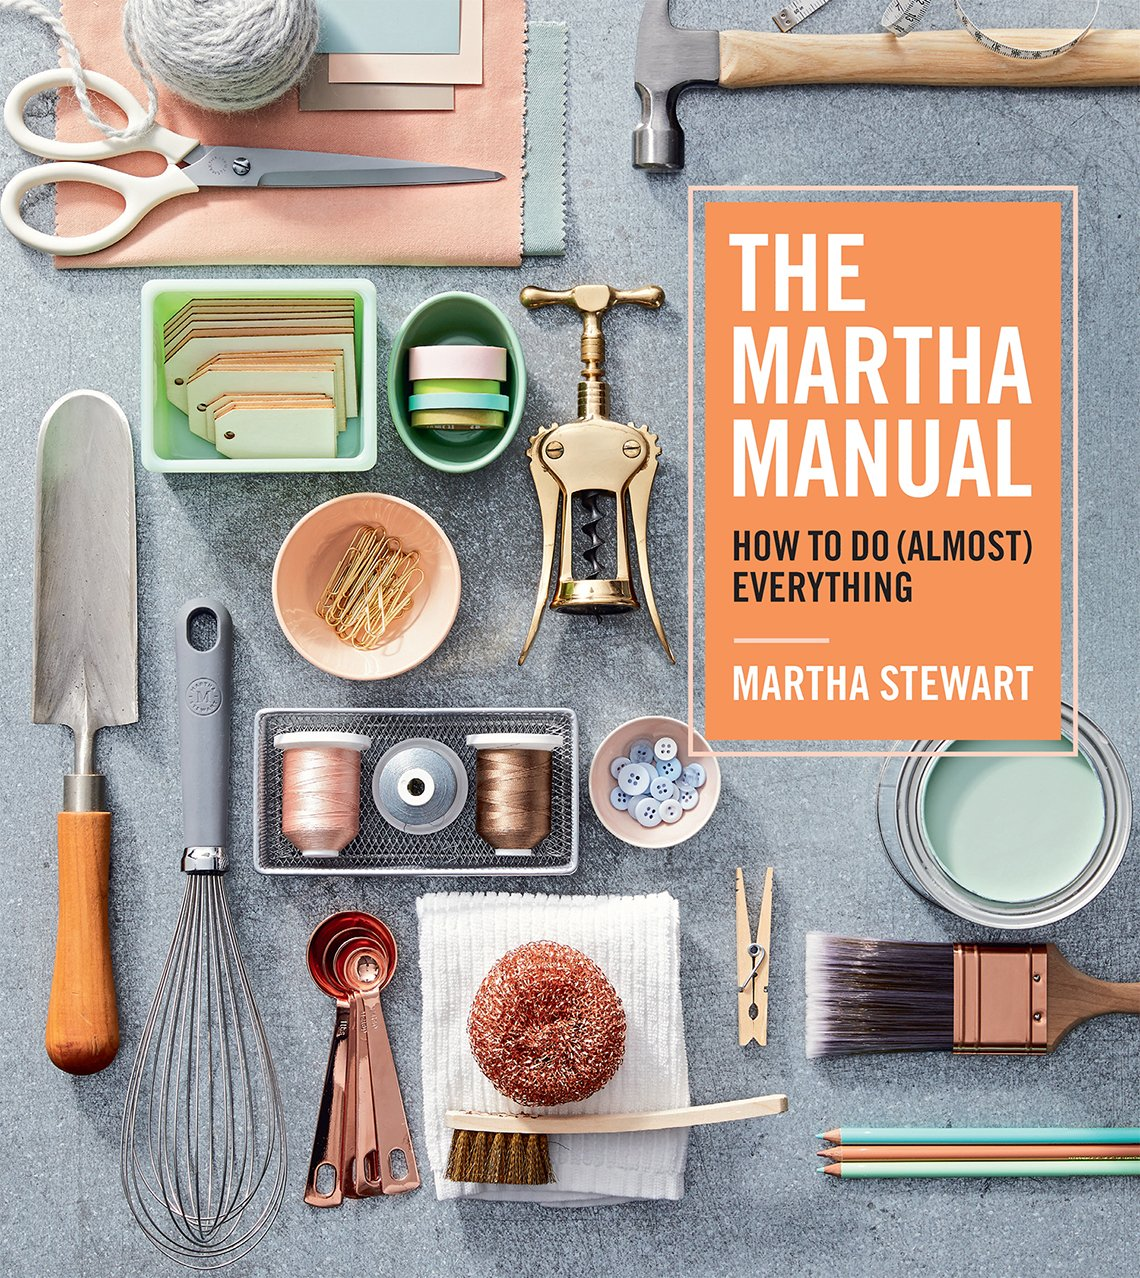 Book cover reads: The Martha Manual: How to Do (Almost) Everything, Martha Stewart